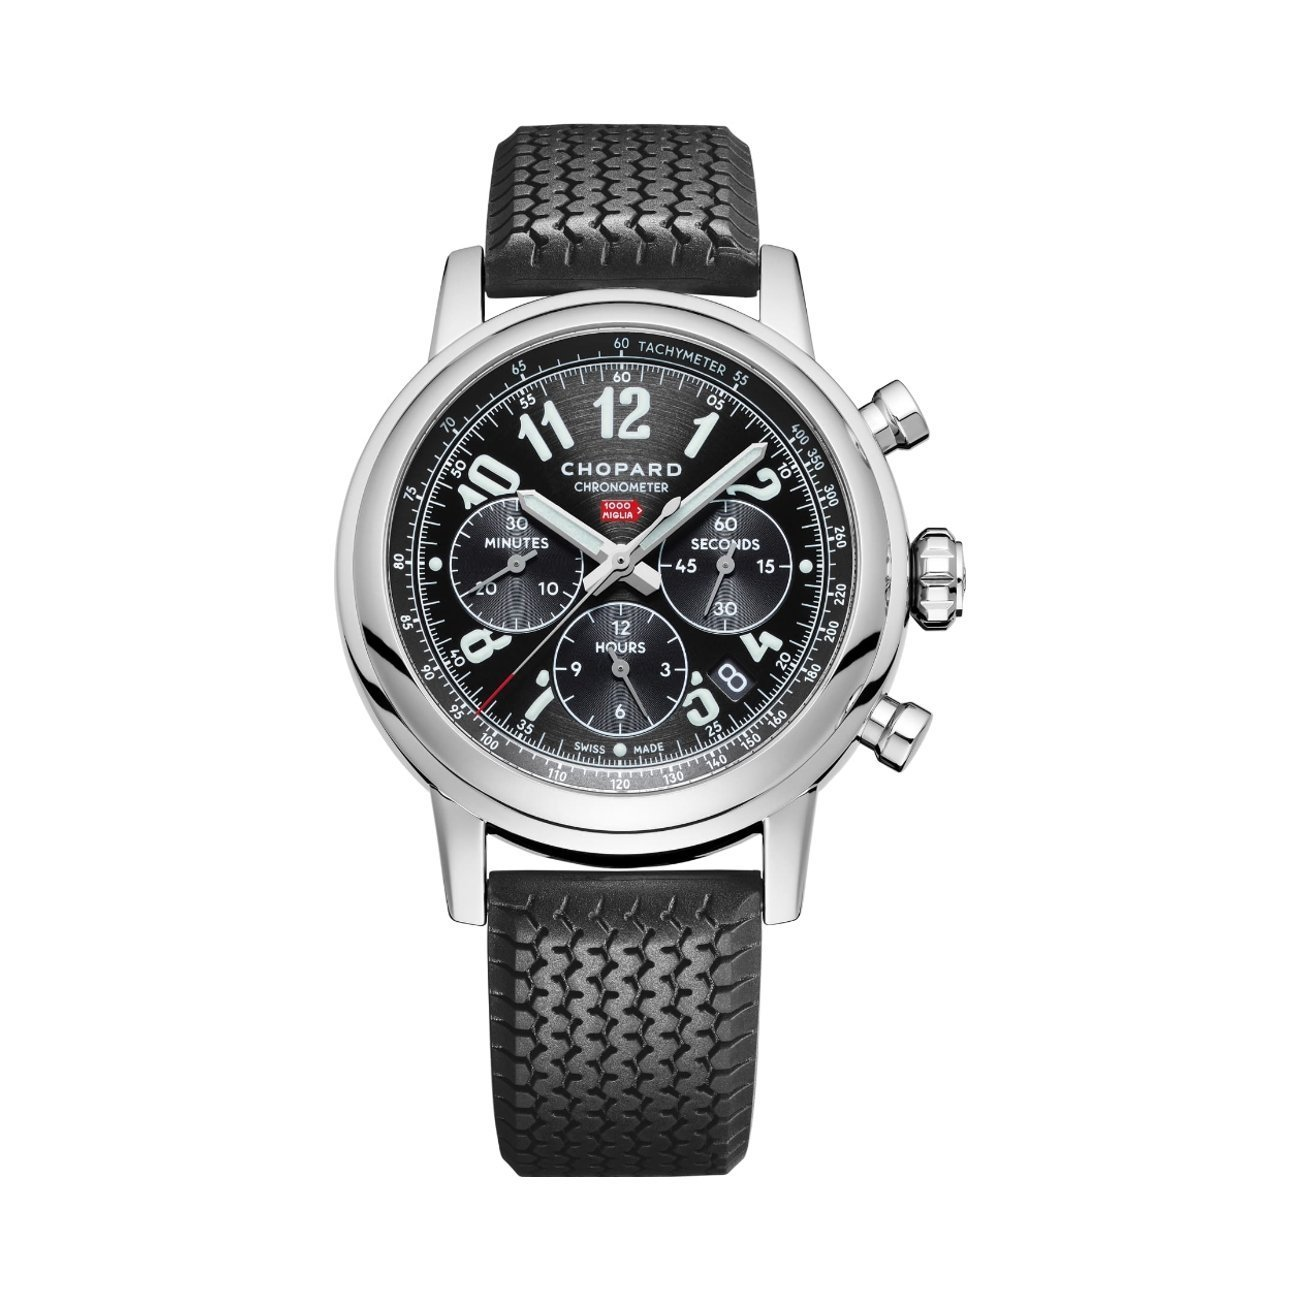 Montre Chopard Classic Racing Mille Miglia Classic Chronograph vue 1